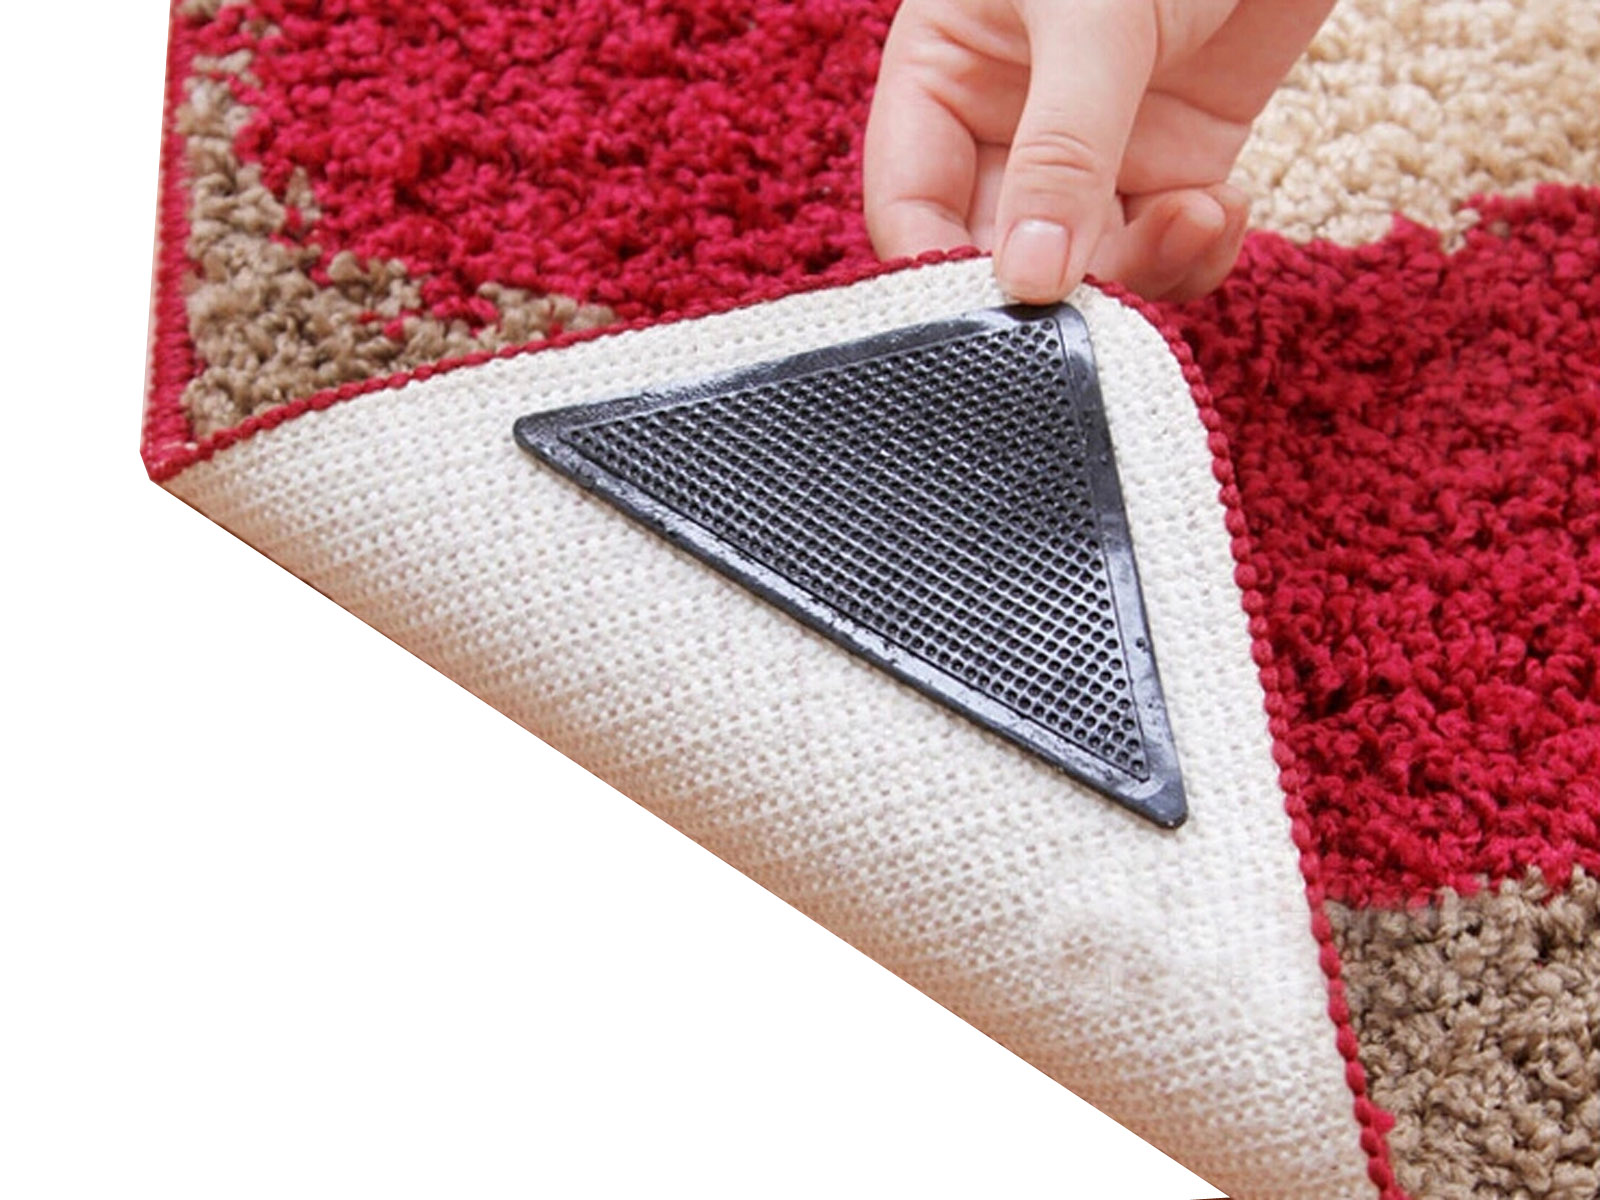 reuseable non slip mat gripper anti skid carpet ruggies. Black Bedroom Furniture Sets. Home Design Ideas